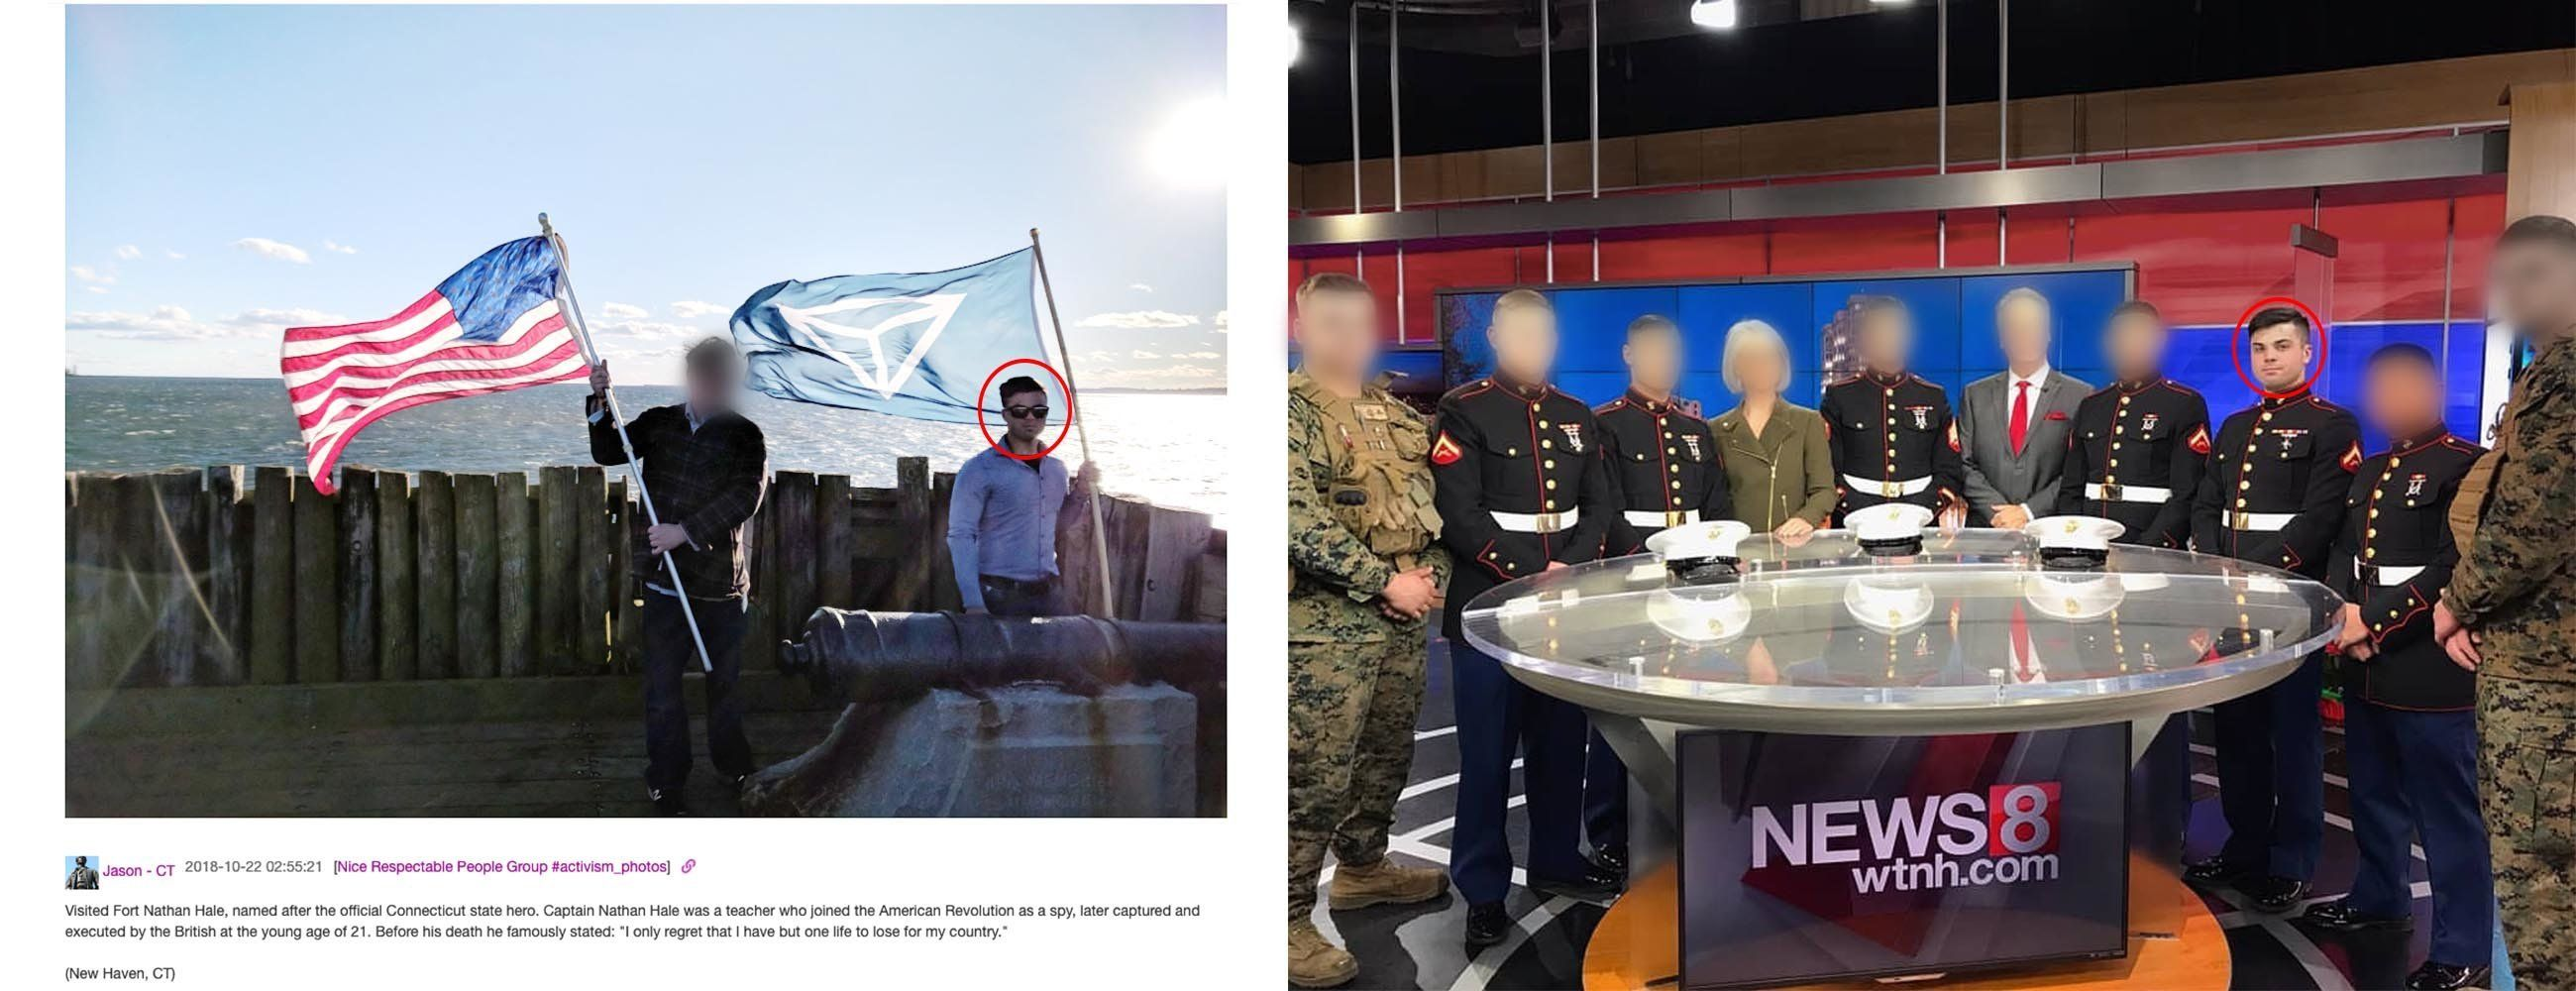 Jason Laguardia posted on the Discord server an image of himself waving an Identity Evropa flag (left). He visited aNew